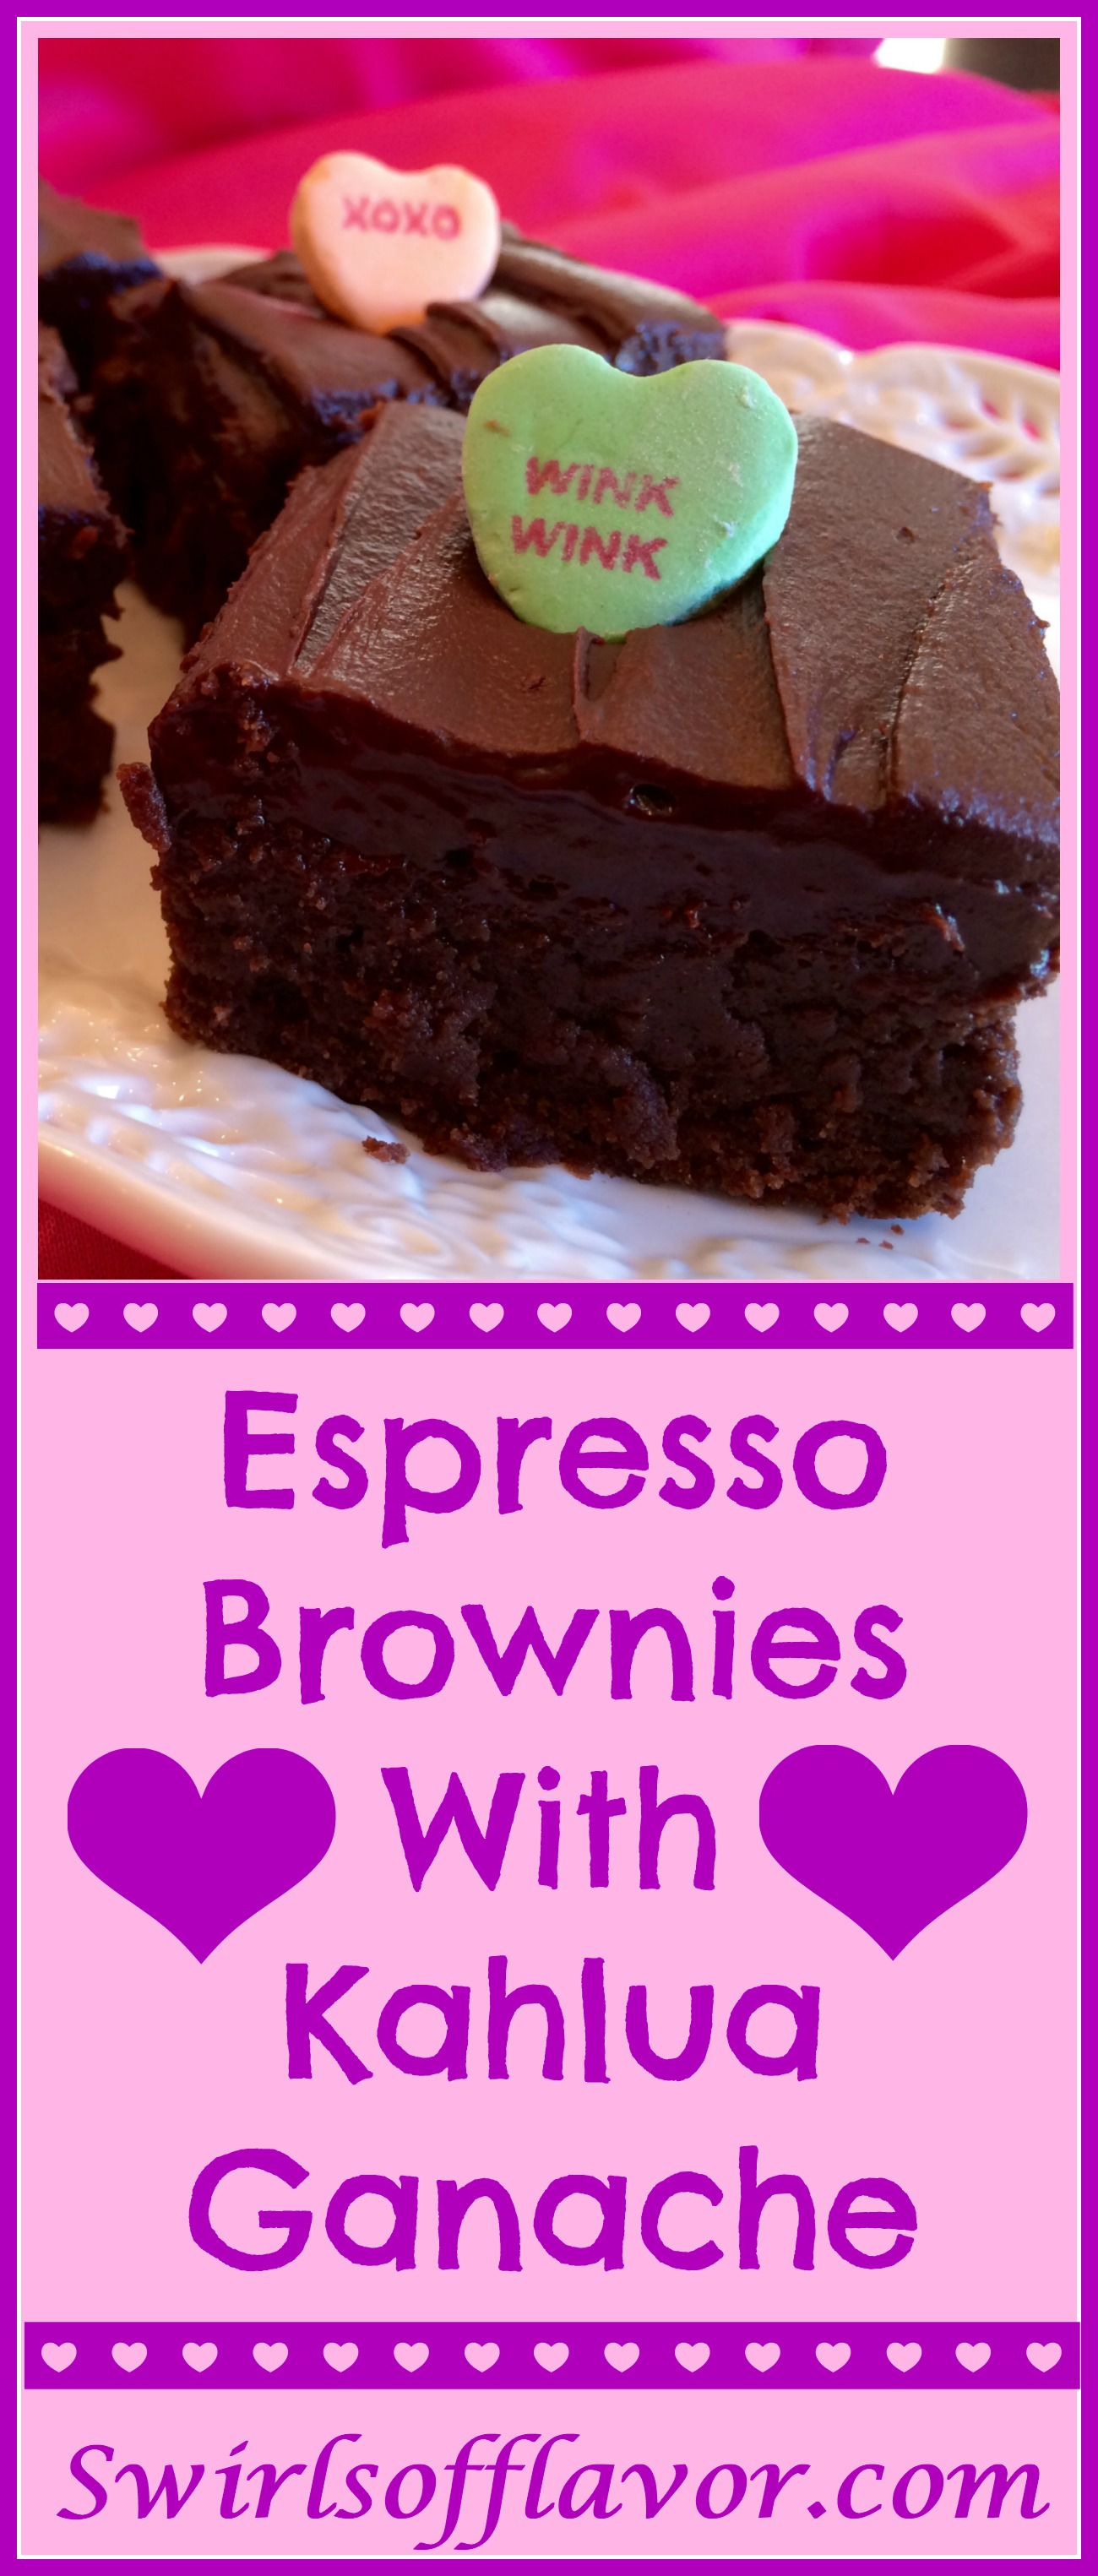 Espresso Brownies With Kahlua Ganache is a homemade brownie recipe made with chopped chocolate and flavored with espresso powder giving these brownies a deep rich chocolate flavor. Top with a silky Kahlua chocolate buttercream frosting and conversation heart candy for a perfect Valentine's Day dessert! #brownies #homemadebrownies #Kahlua #buttercreamfrosting #ganache #valentinesday #dessert #easyrecipe #swirlsofflavor